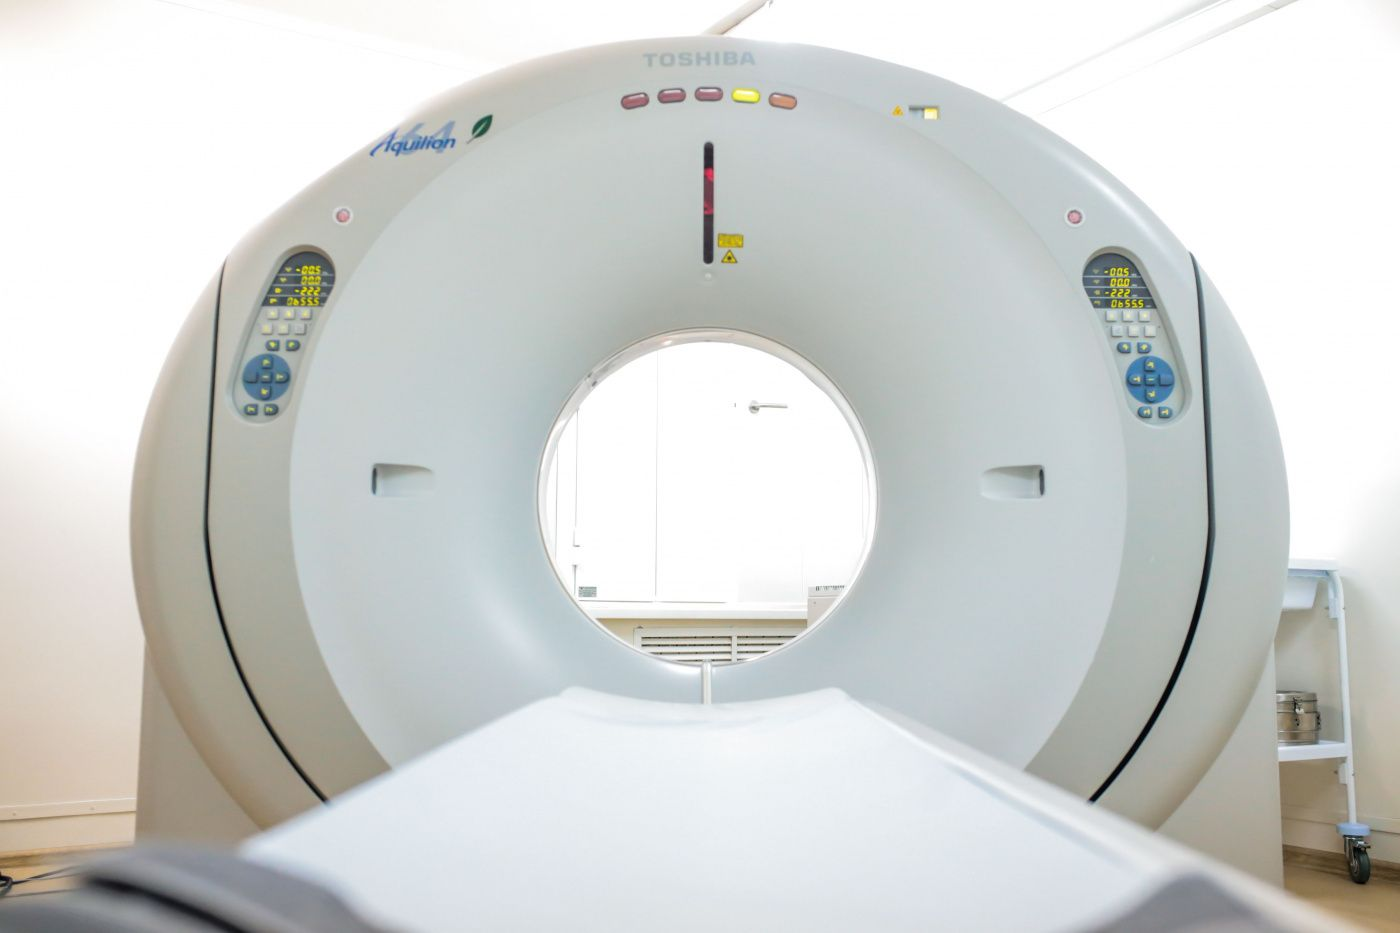 Booking an appointment for chest CT scan is available